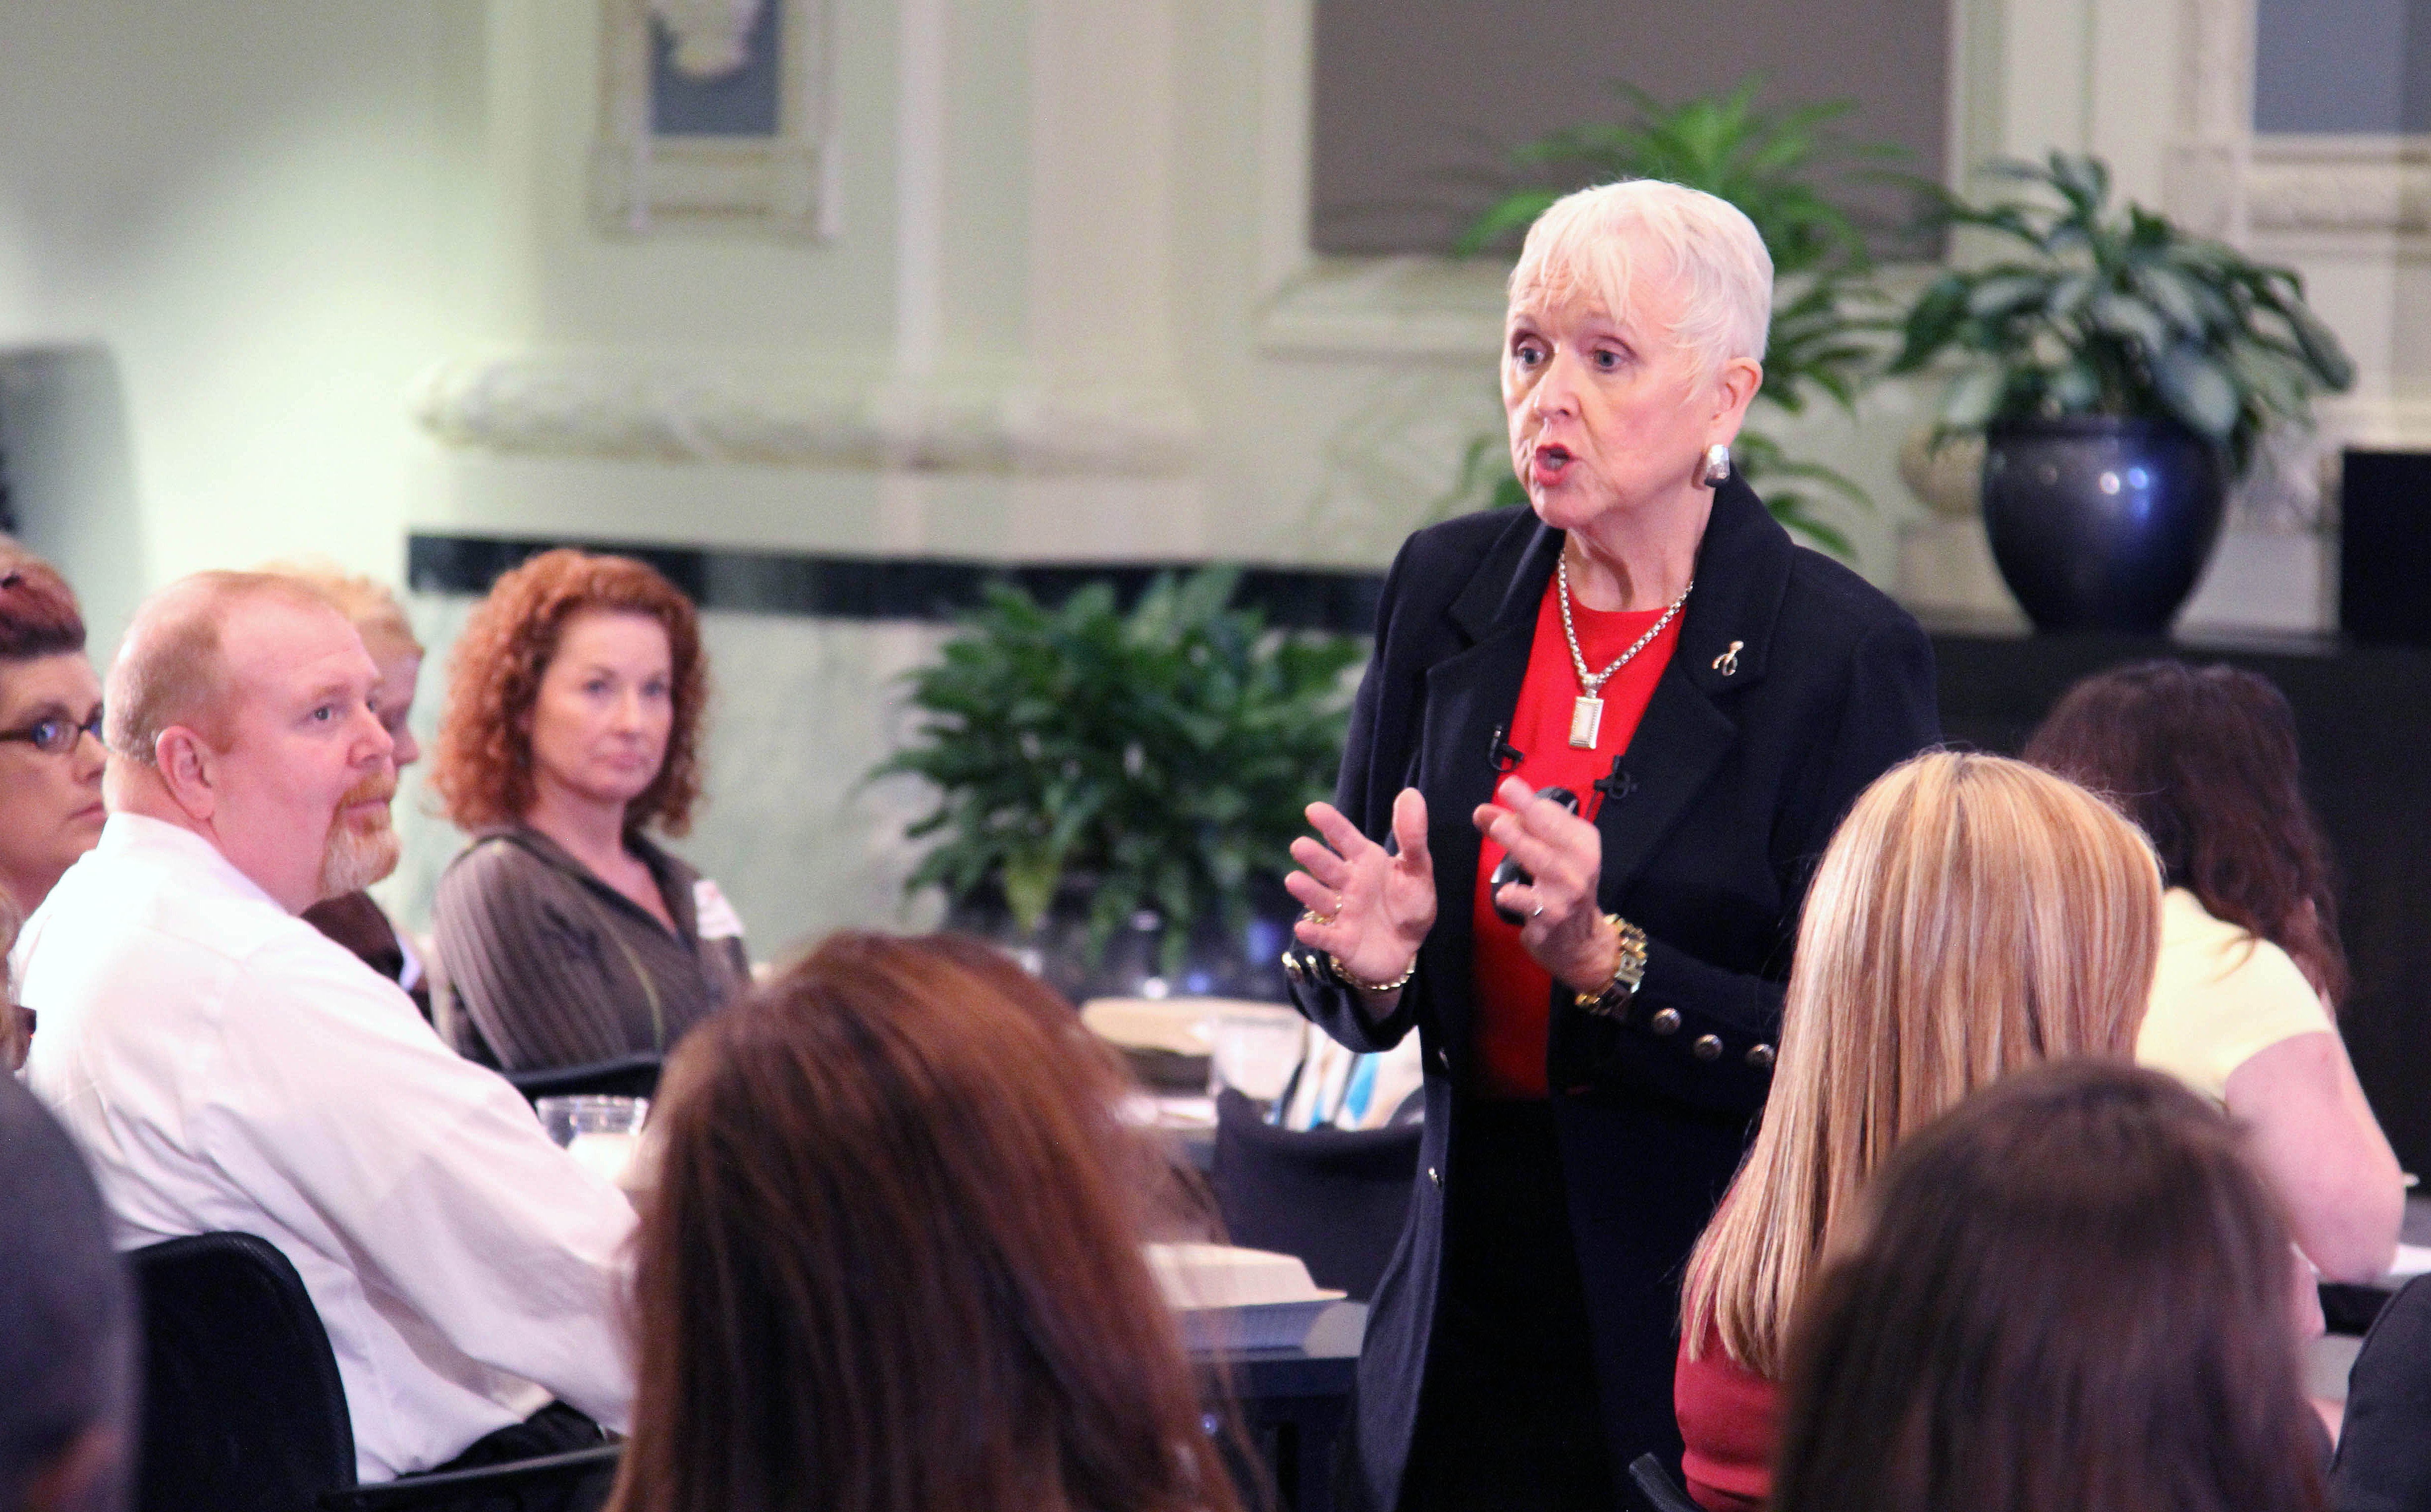 Experienced speaker Mary Redmond